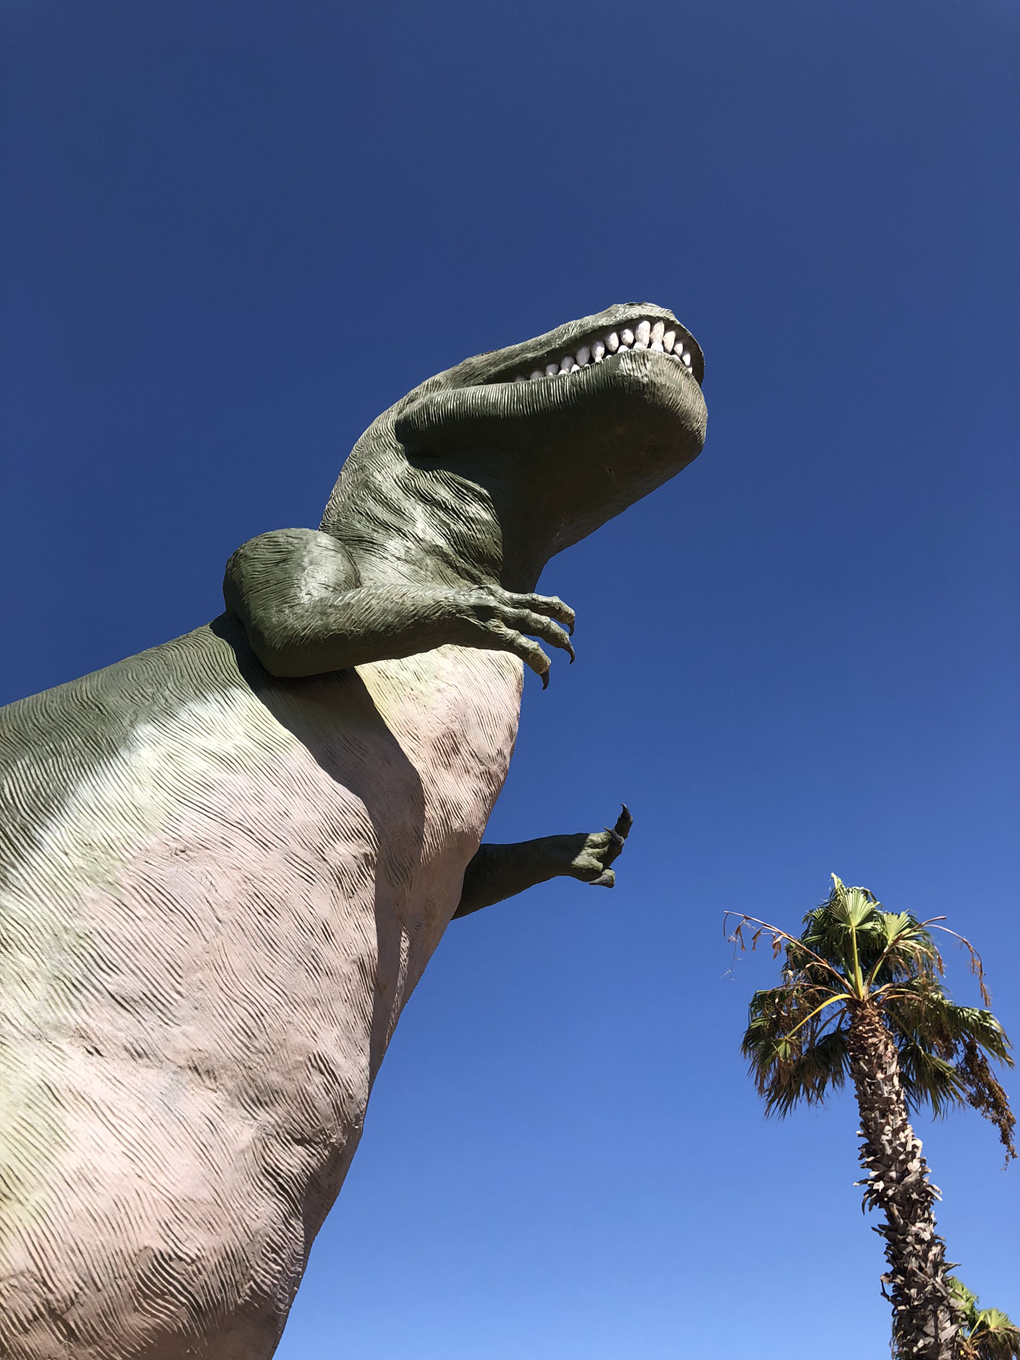 Cabazon dinosaur with blue sky and palm tree